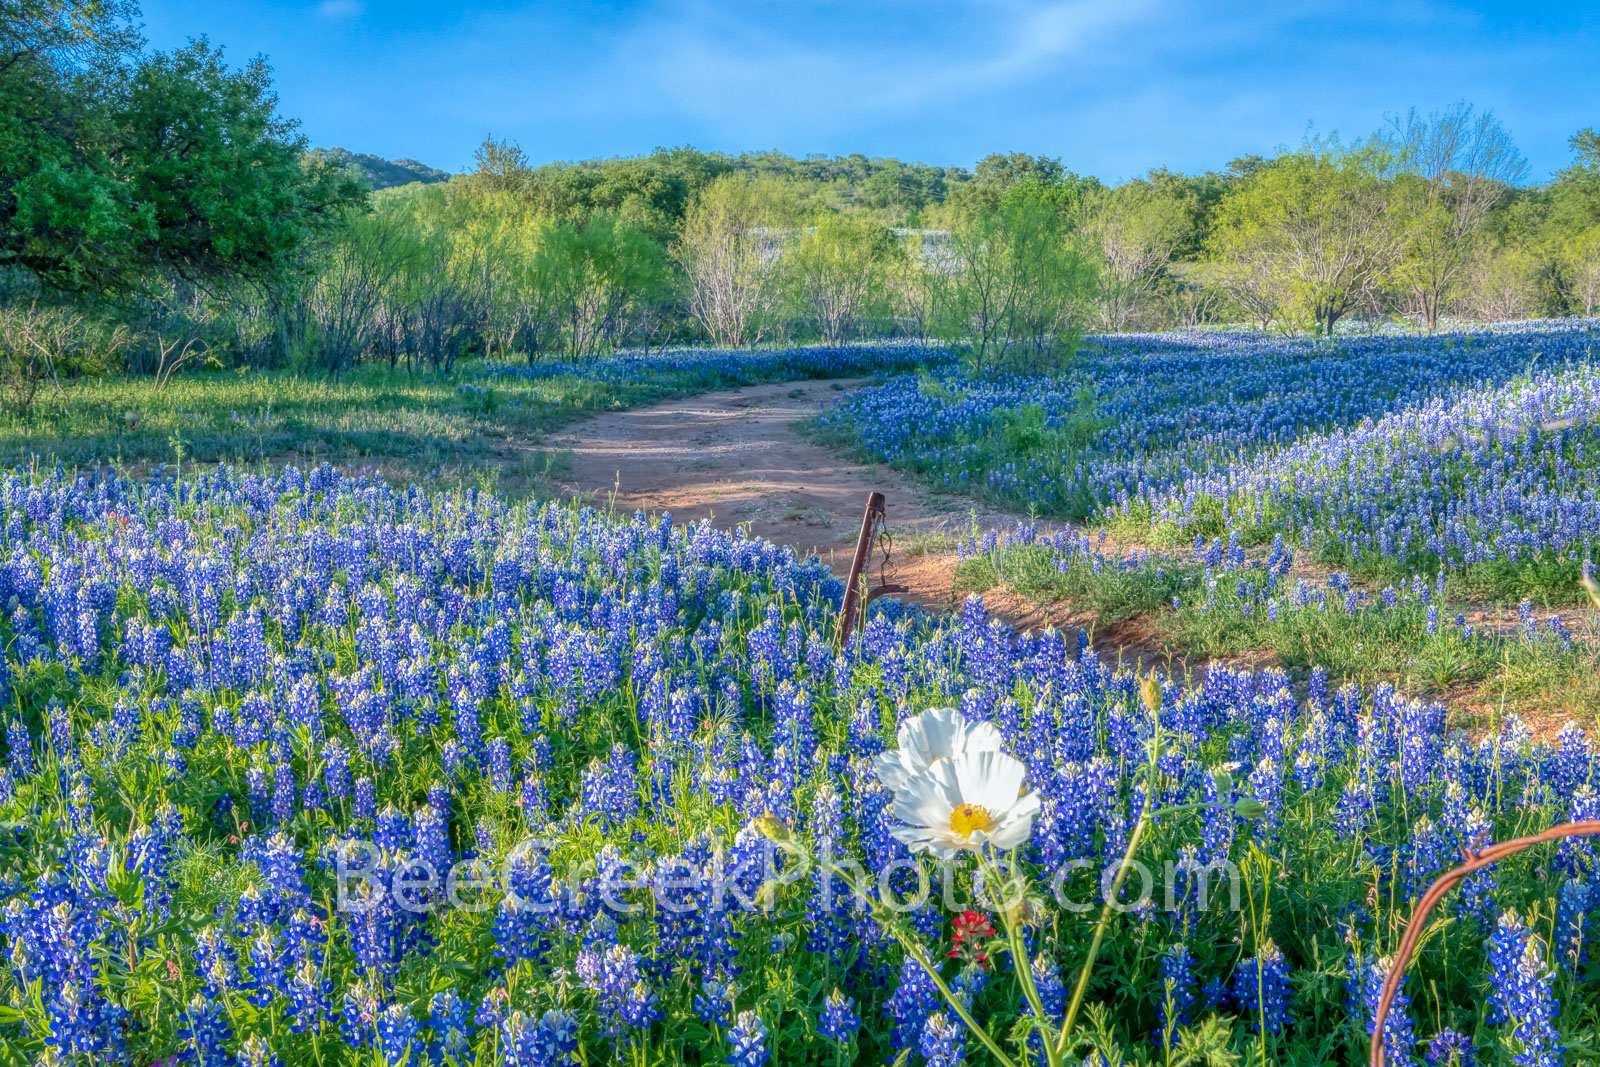 poppies, texas bluebonnets, bluebonnets, texas wildflowers, wildflowers, texas hill country, texas, field of bluebonnets, hill country, road, mesquite, blue, images of bluebonnets, pictures of blueb